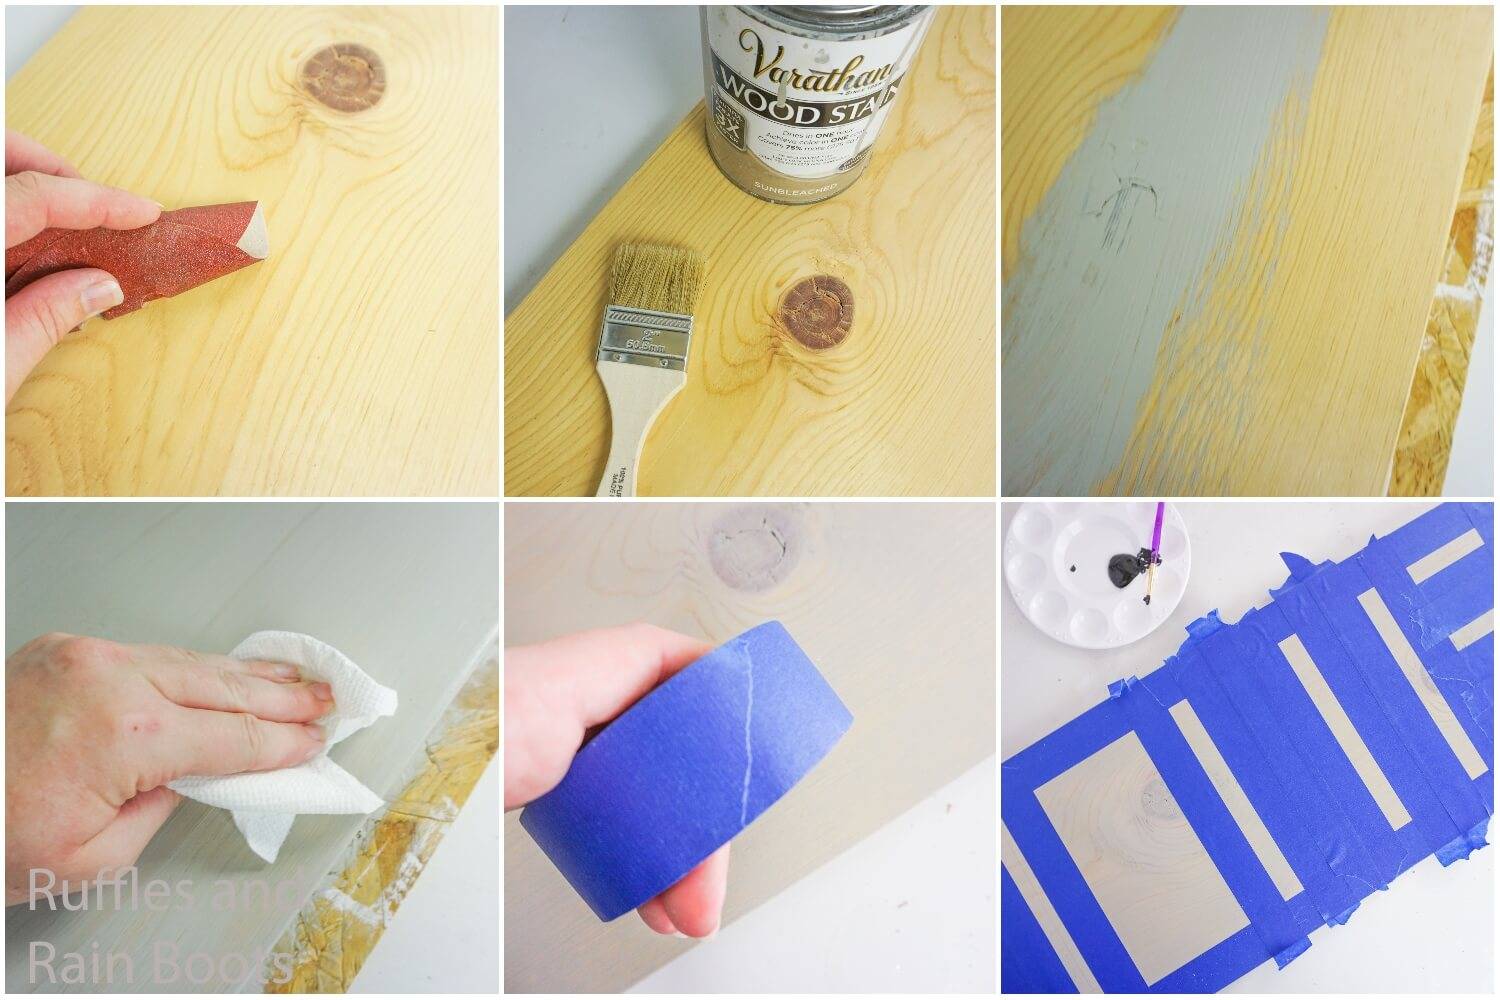 photo collage tutorial of how to make seasonal home sign by painting the wood and taping off the areas for the letters